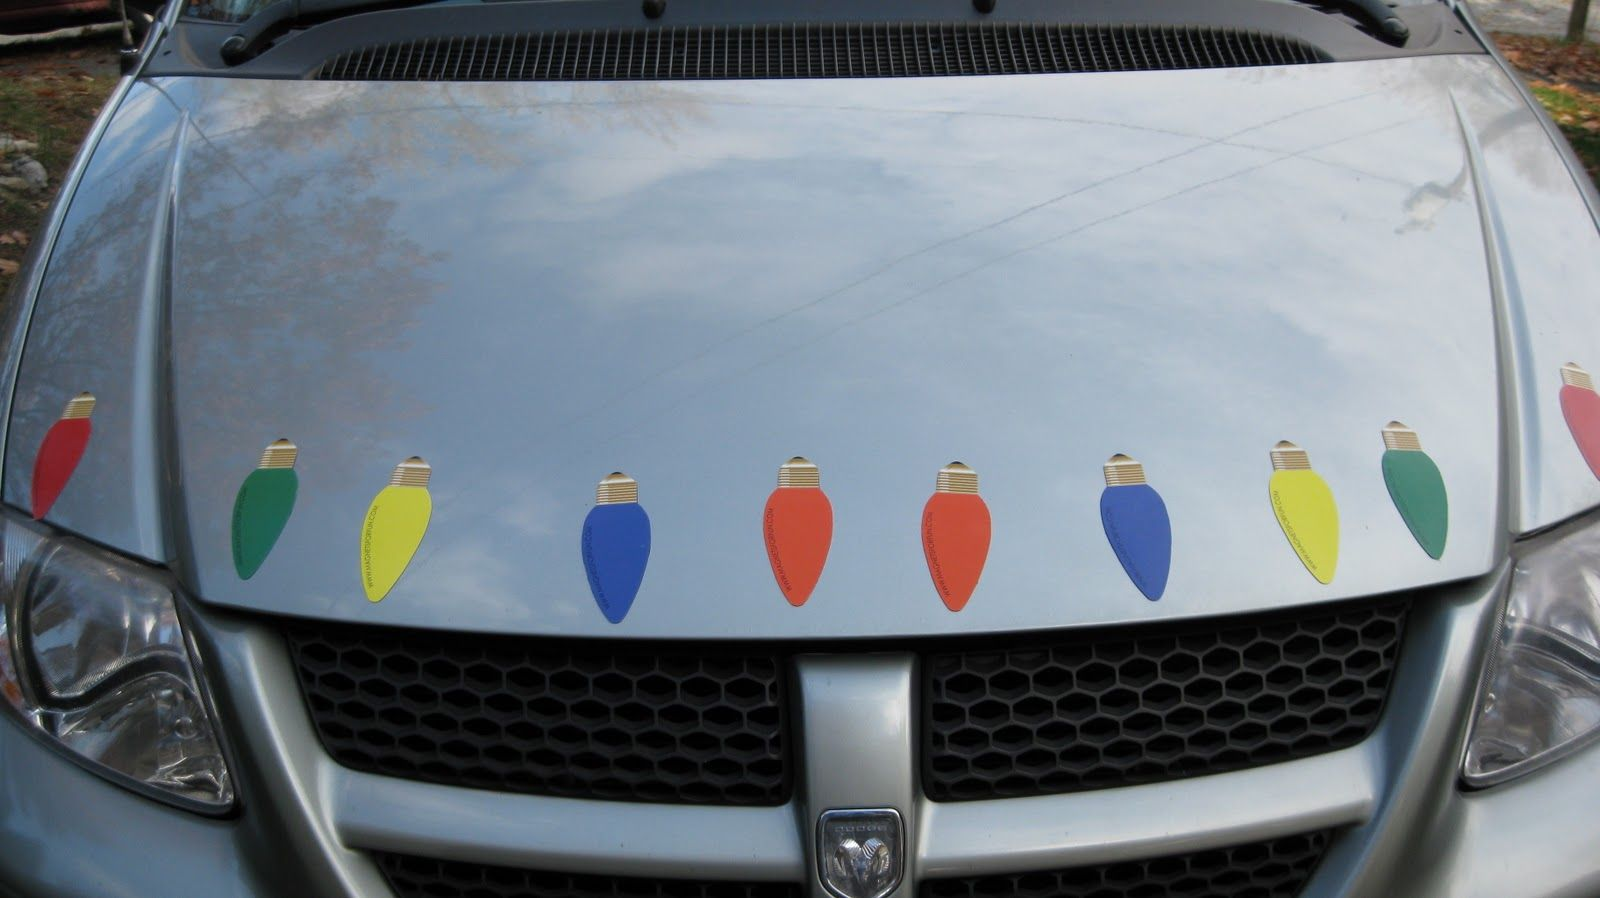 6 Tackiest Christmas Car Decorations You Want Christmas Car Decorations Christmas Car Car Decor